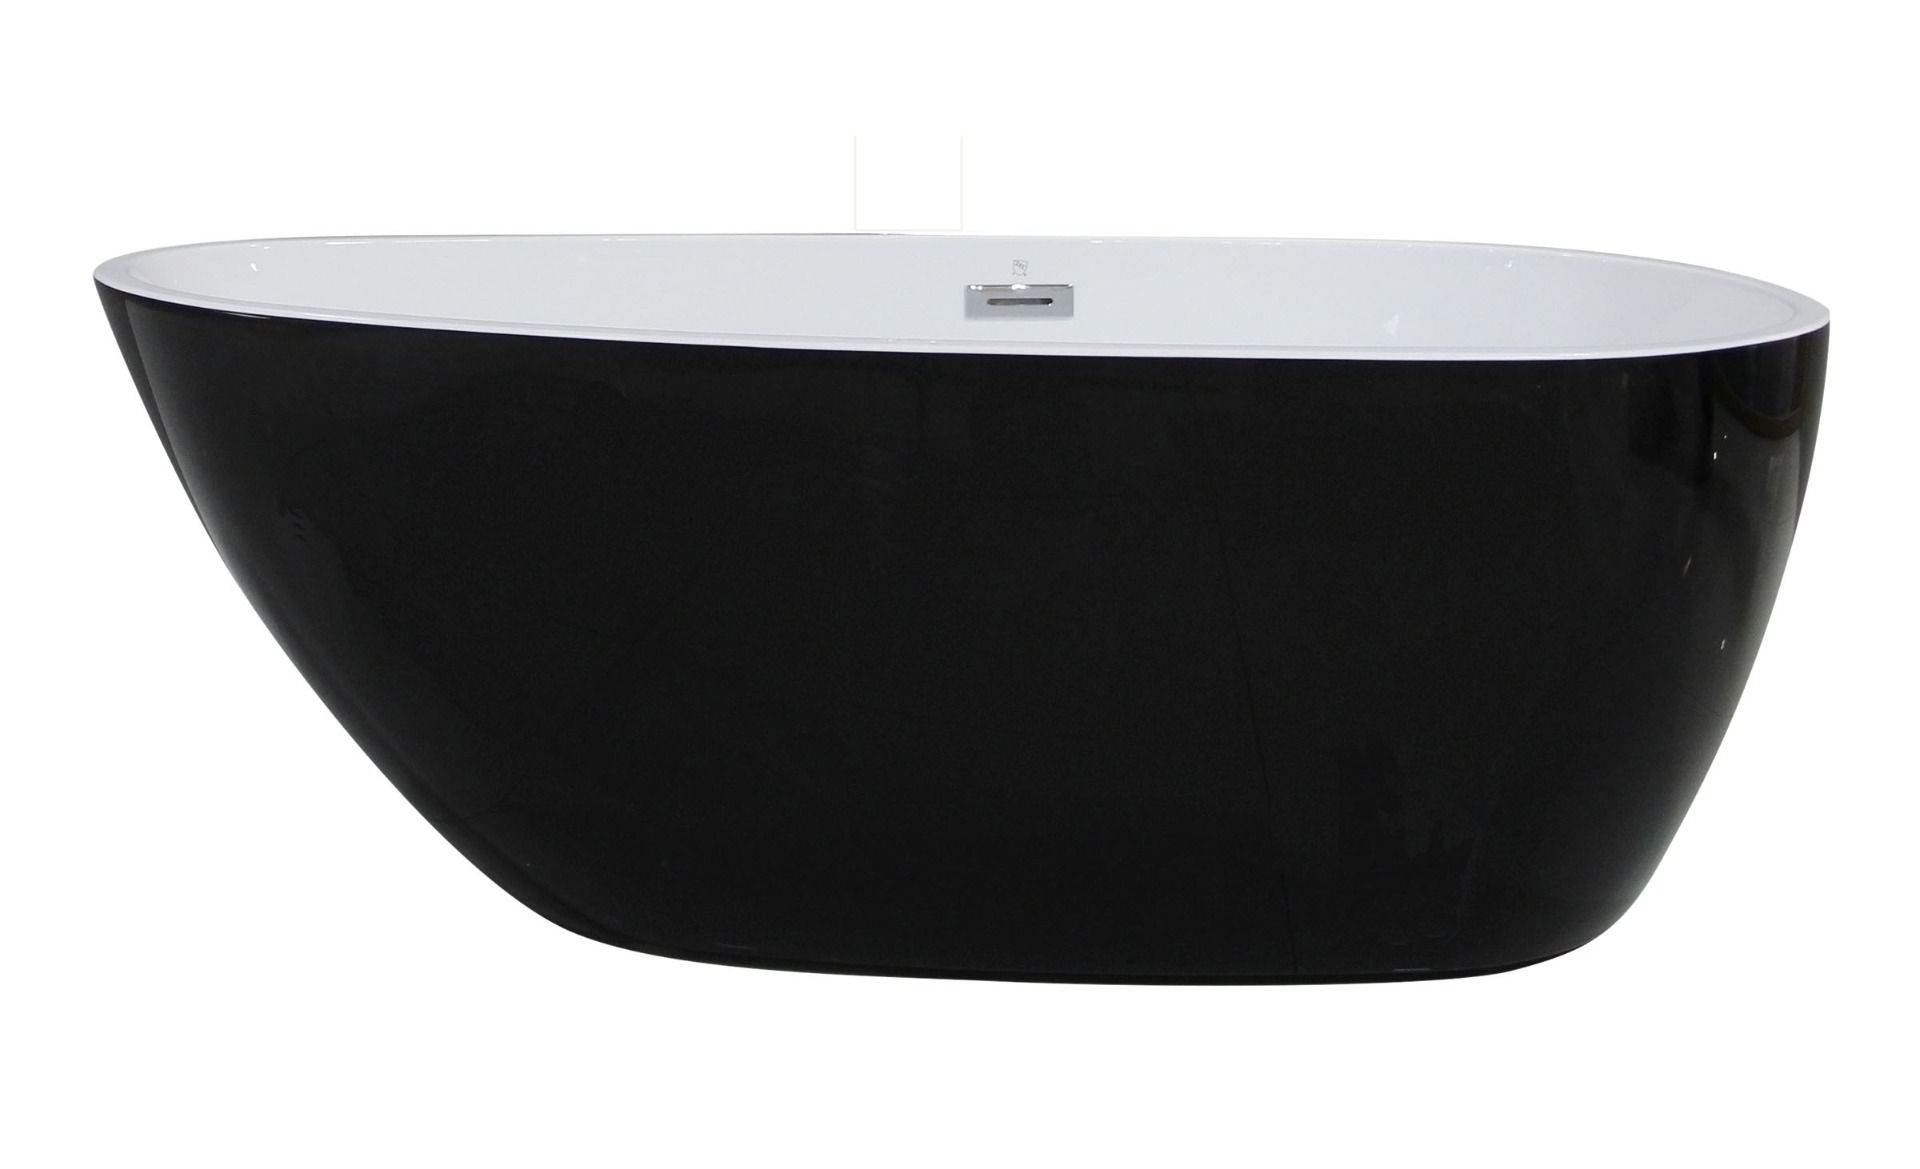 "ALFI Brand AB8862 59"" Black & White Oval Acrylic Free Standing Soaking Bathtub"